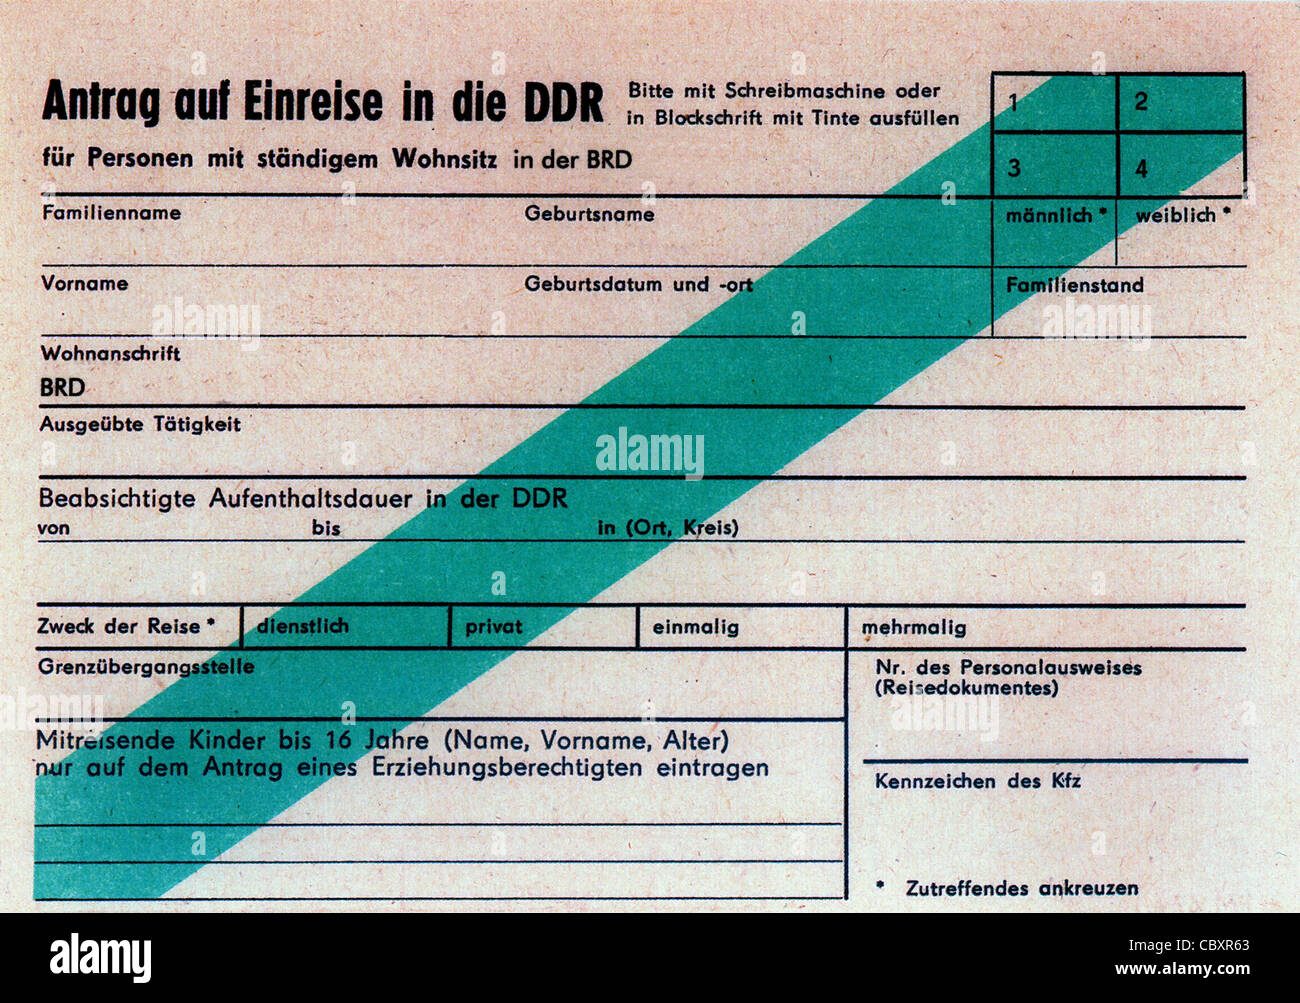 application form for the entry into the gdr stock image - Elterngeldantrag Ausfullen Muster